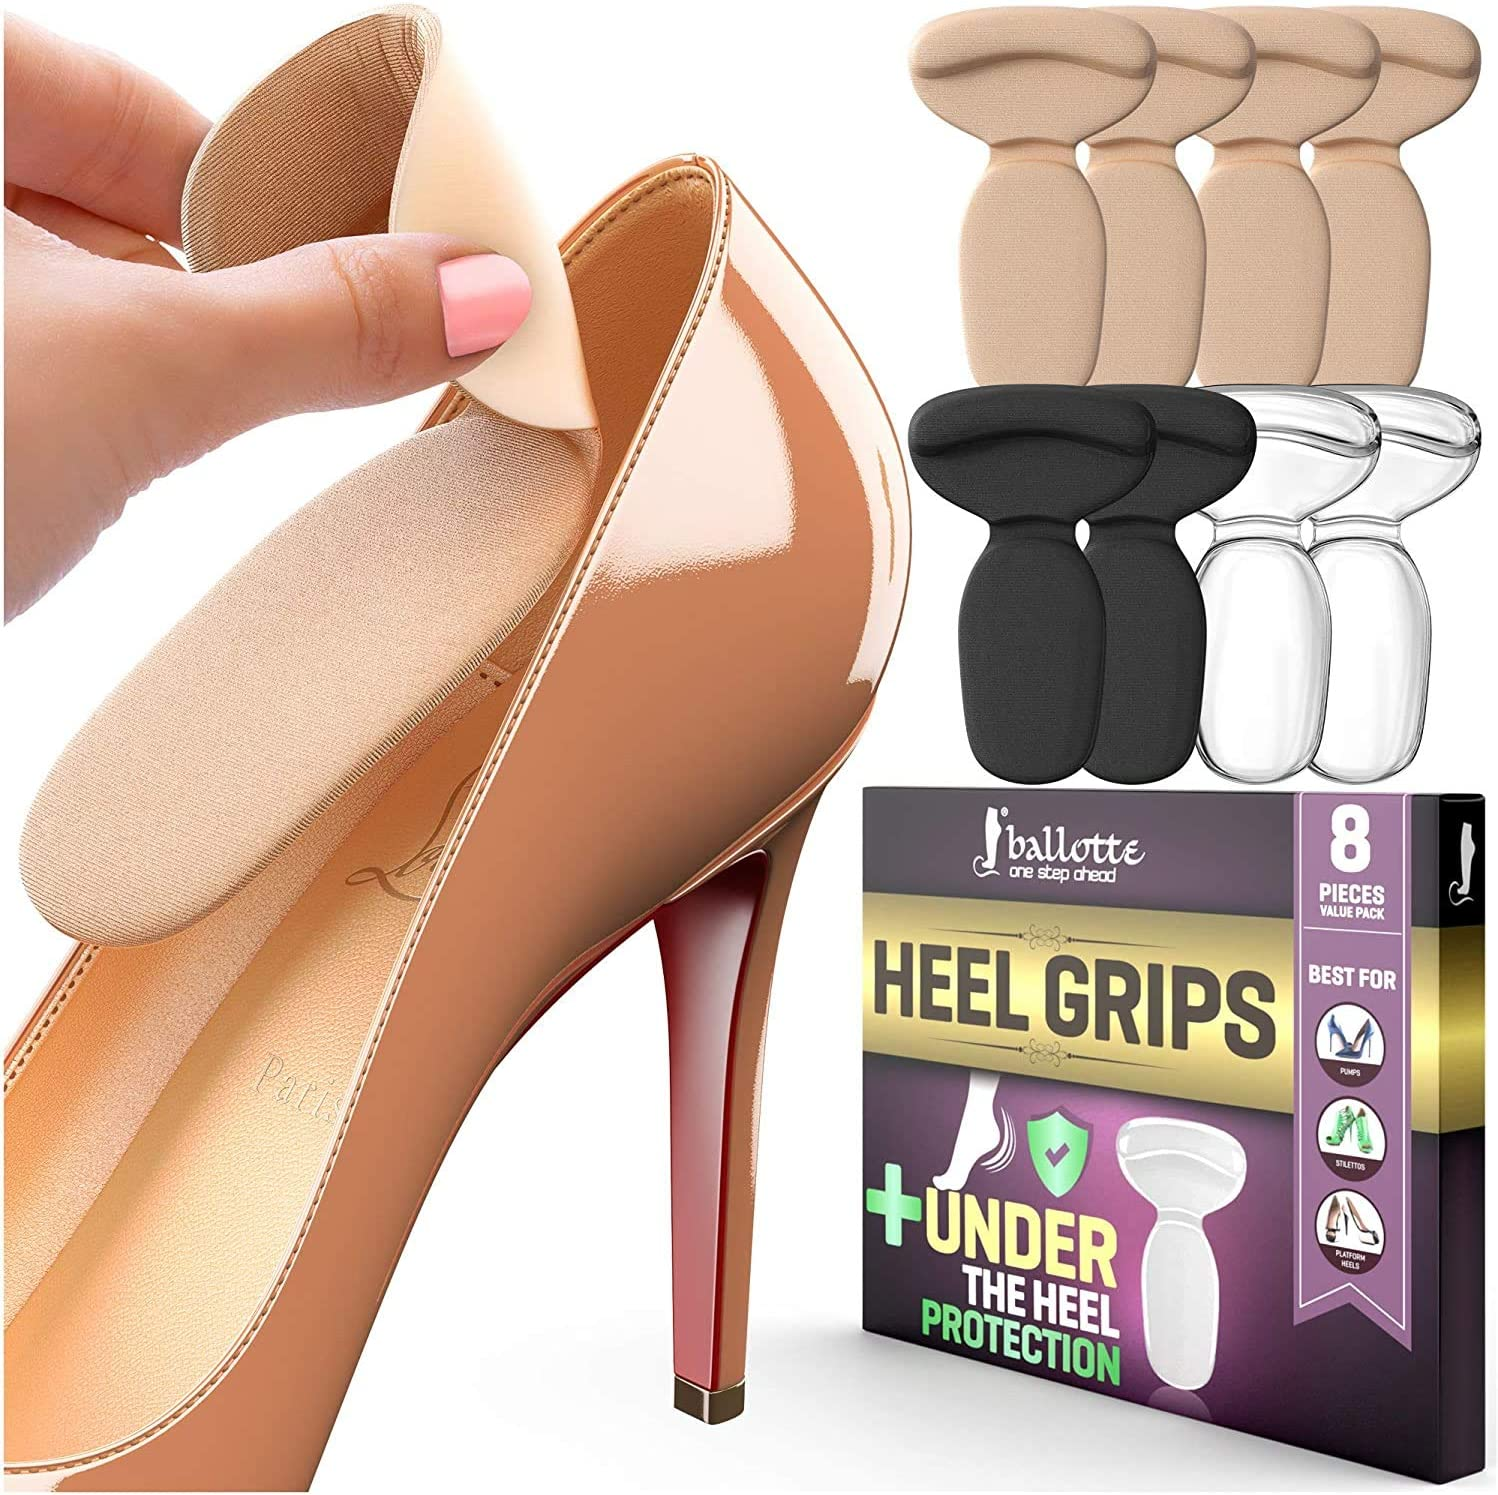 Reusable Heel Inserts for Women Soft and Men Popular brand Extra Protect Max 68% OFF